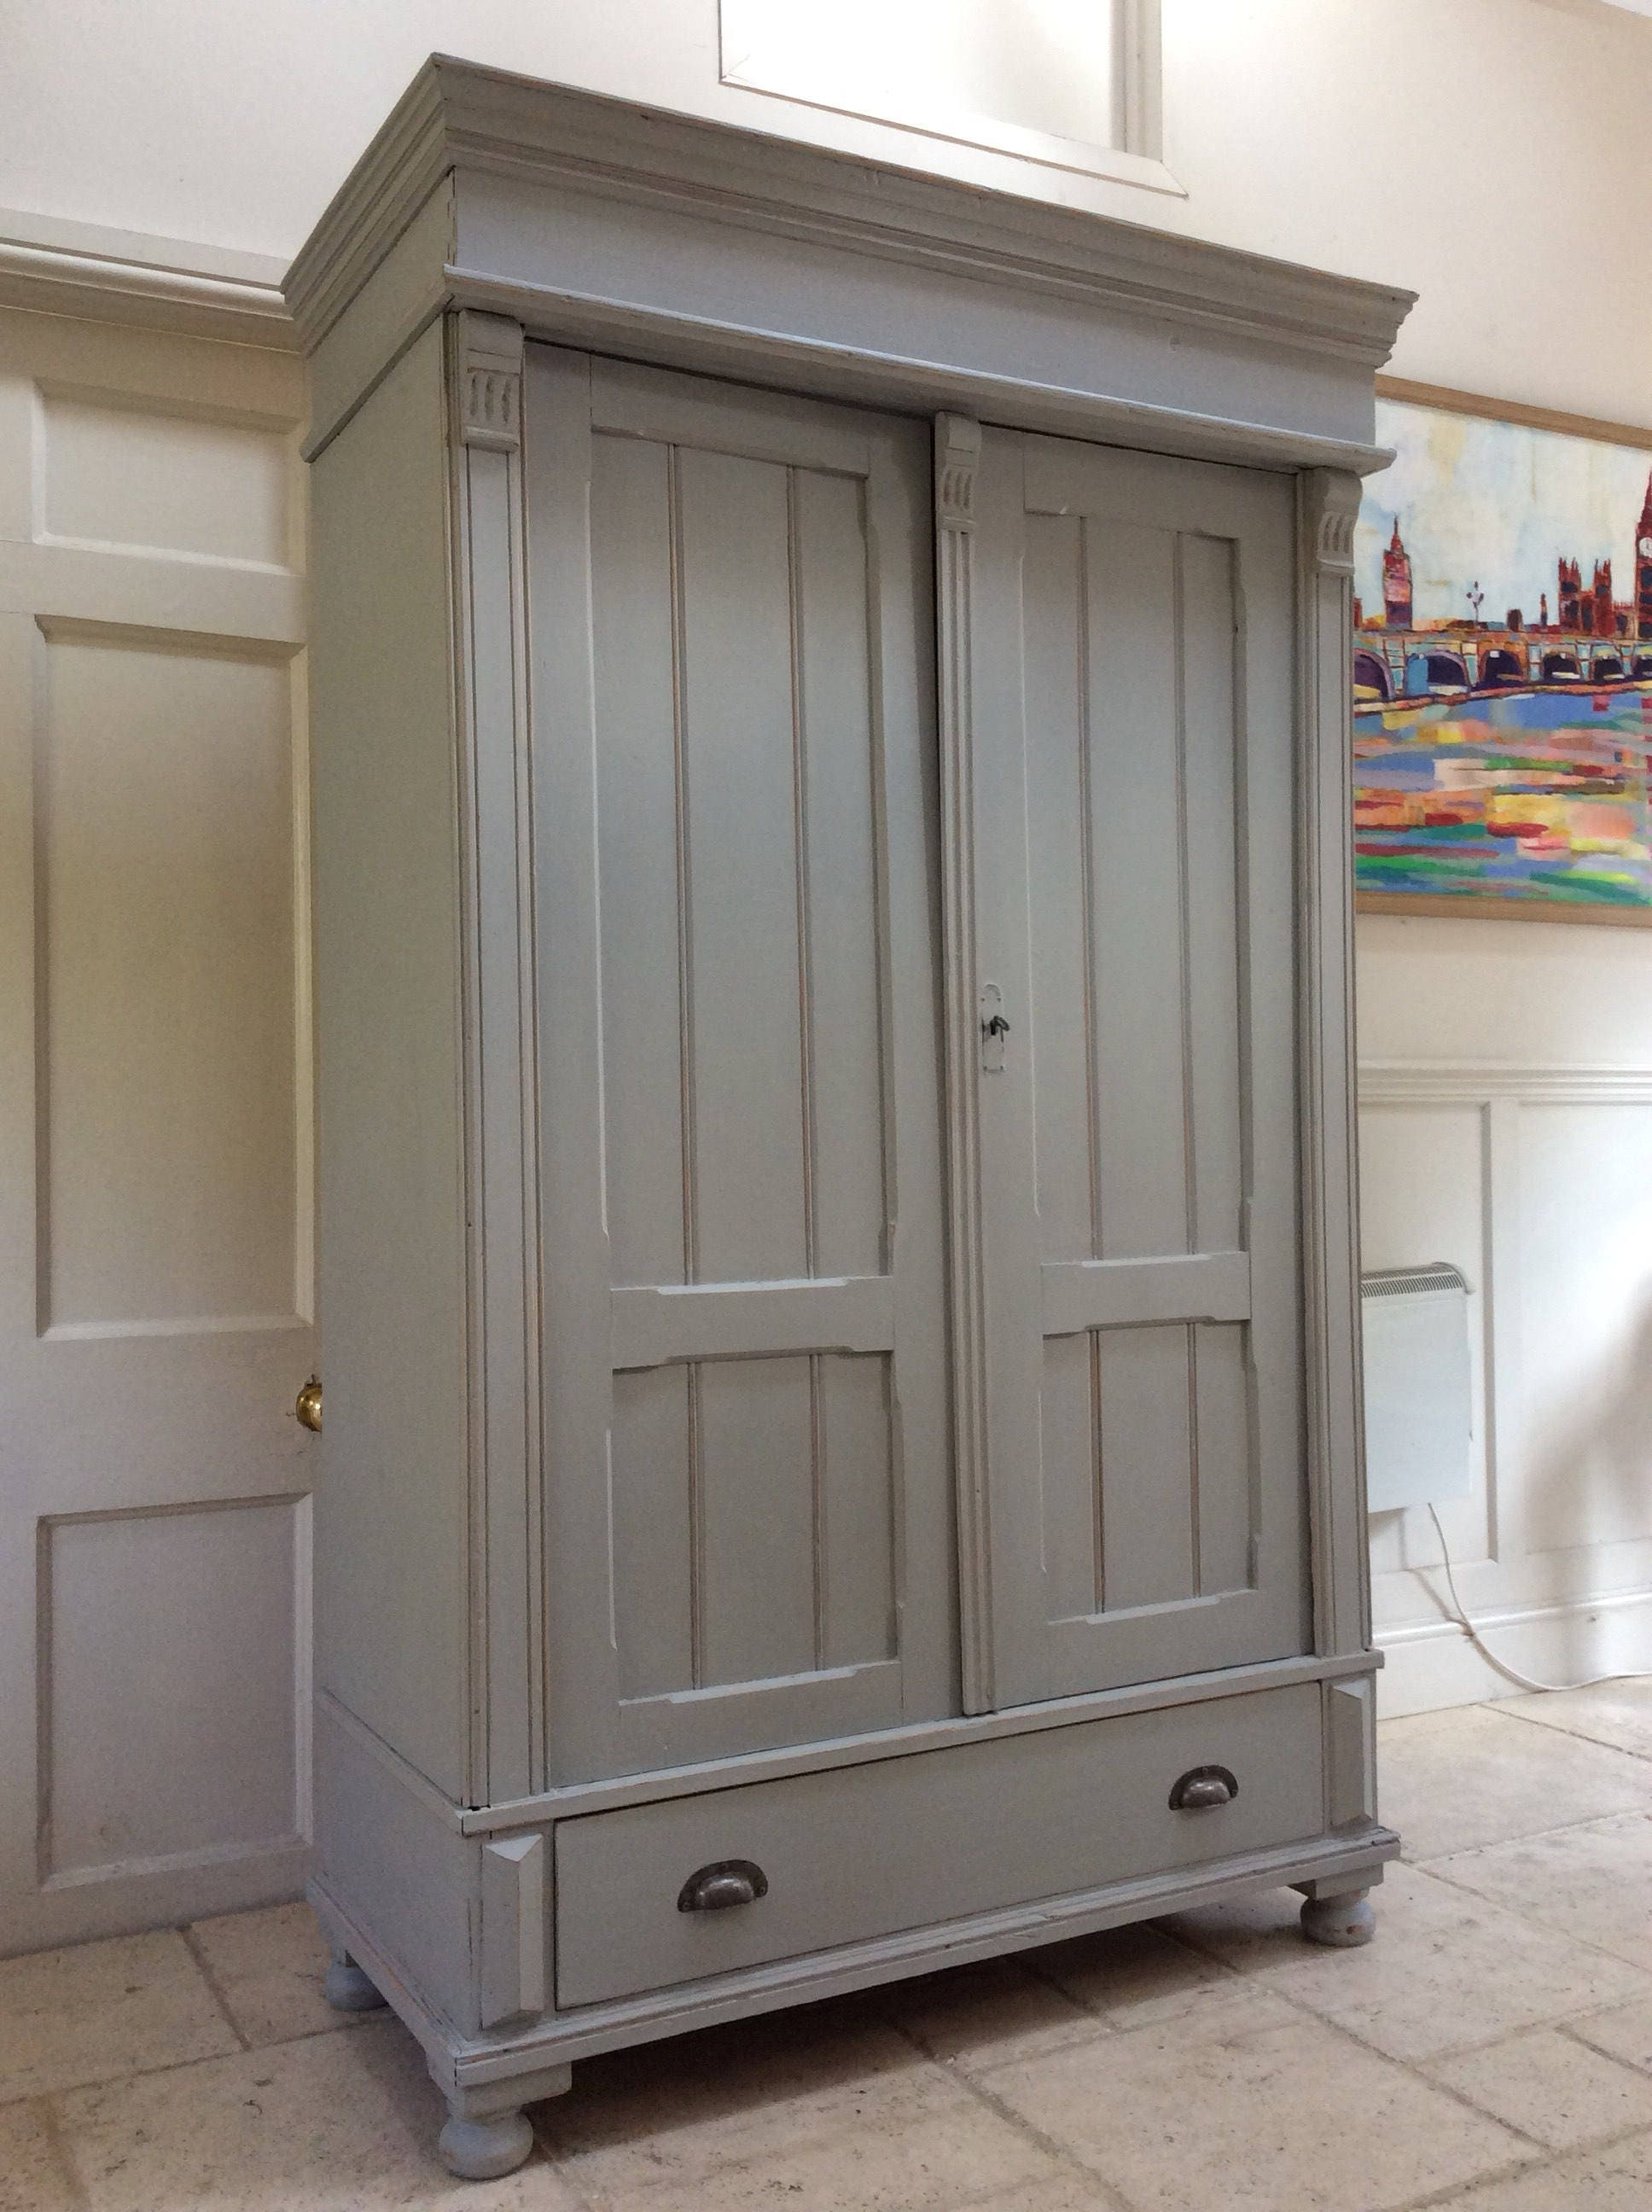 Antique Victorian Solid Pine French Gustavian Style Grey Painted Wardrobe Armoire Hall Cupboard